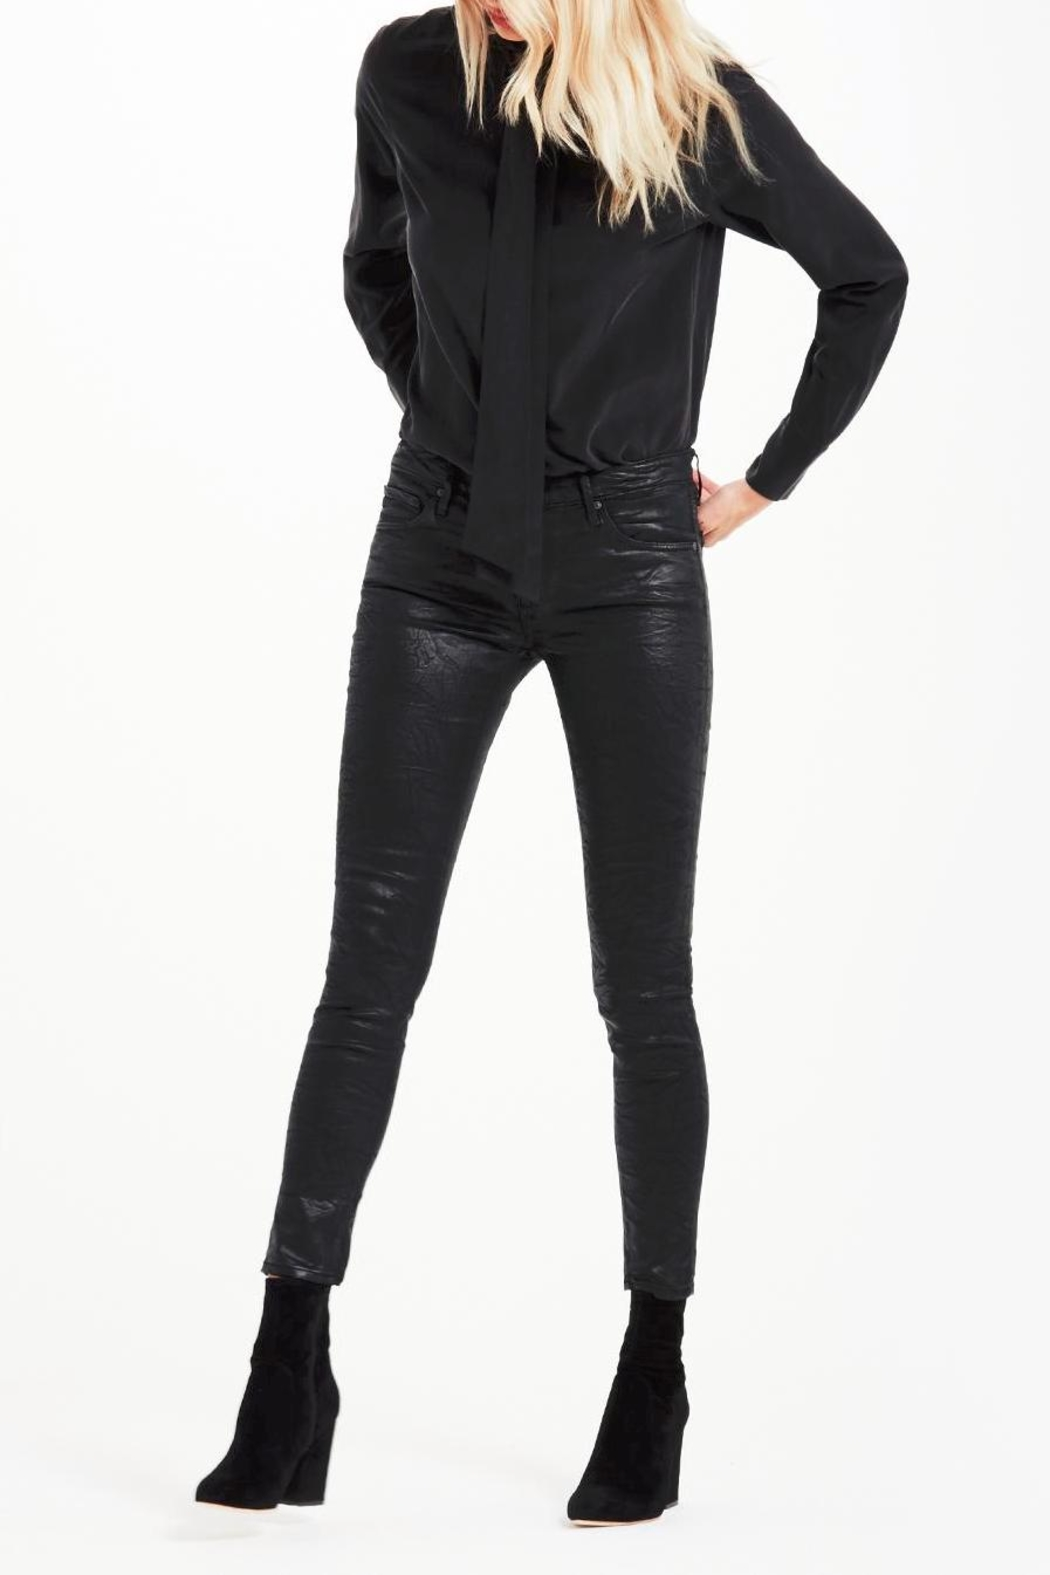 AG Adriano Goldschmied Legging-Ankle Crackle Leatherette - Main Image